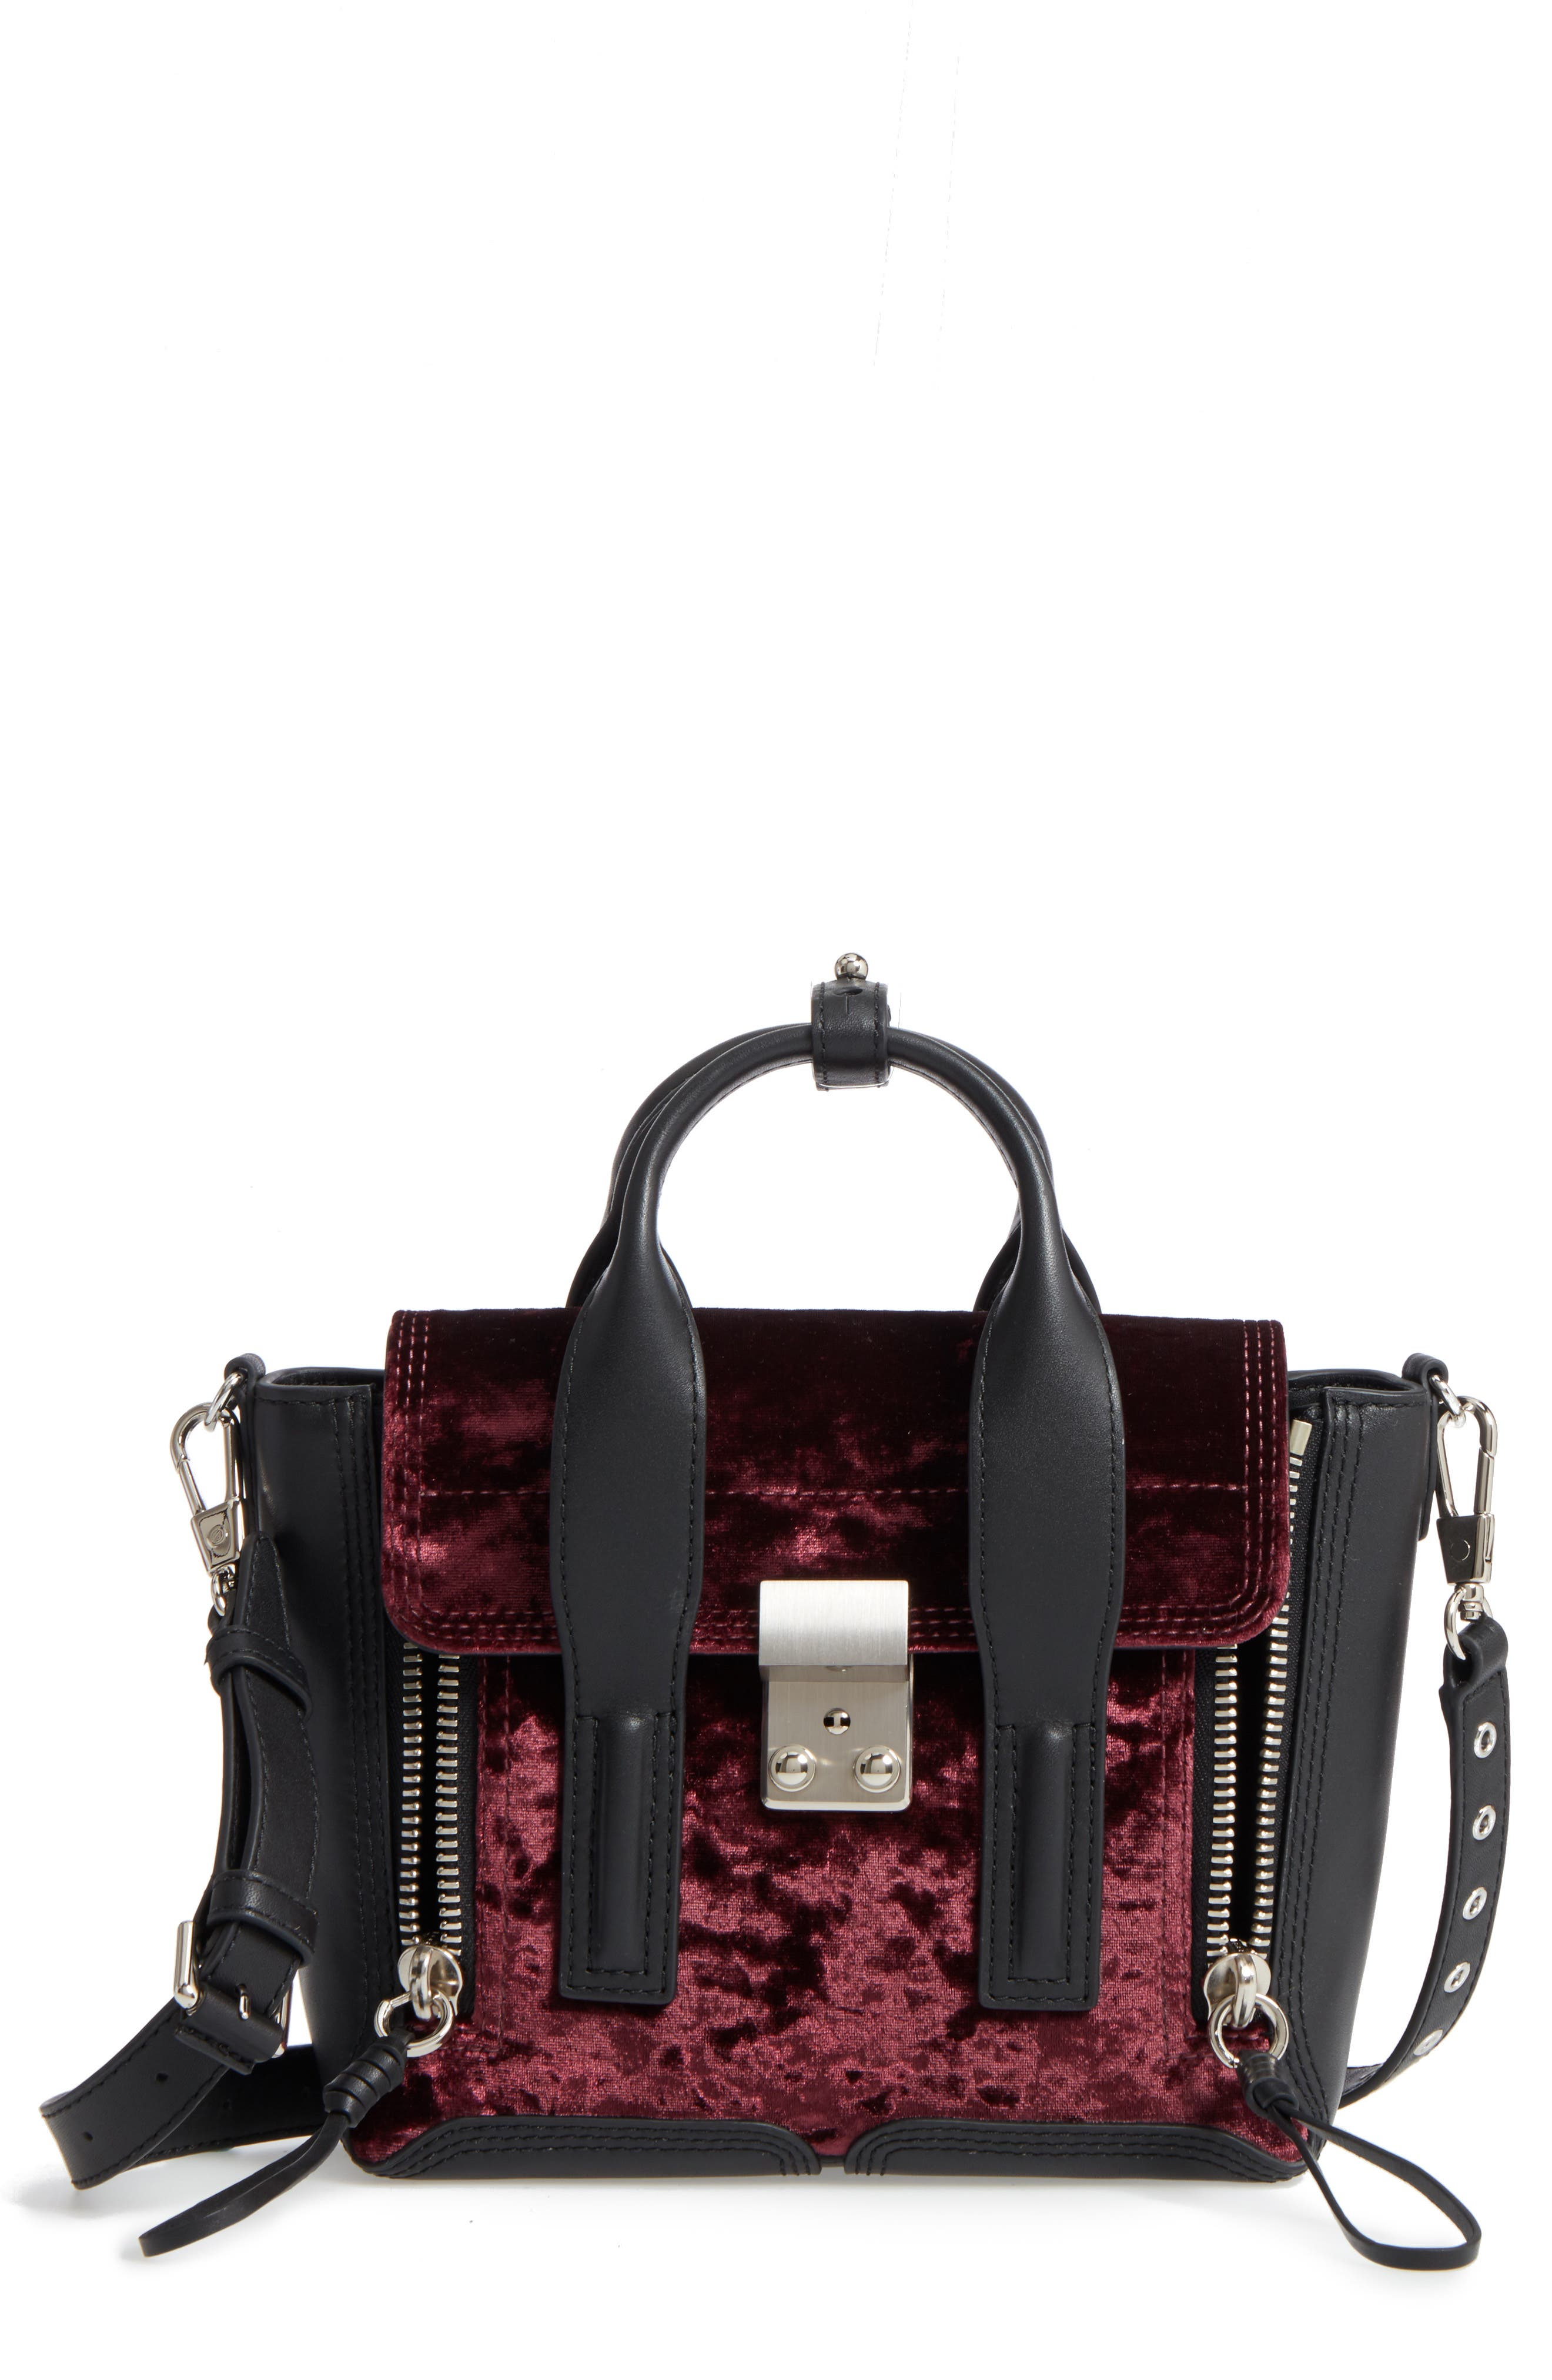 Main Image - 3.1 Phillip Lim Mini Pashli Velvet & Leather Satchel